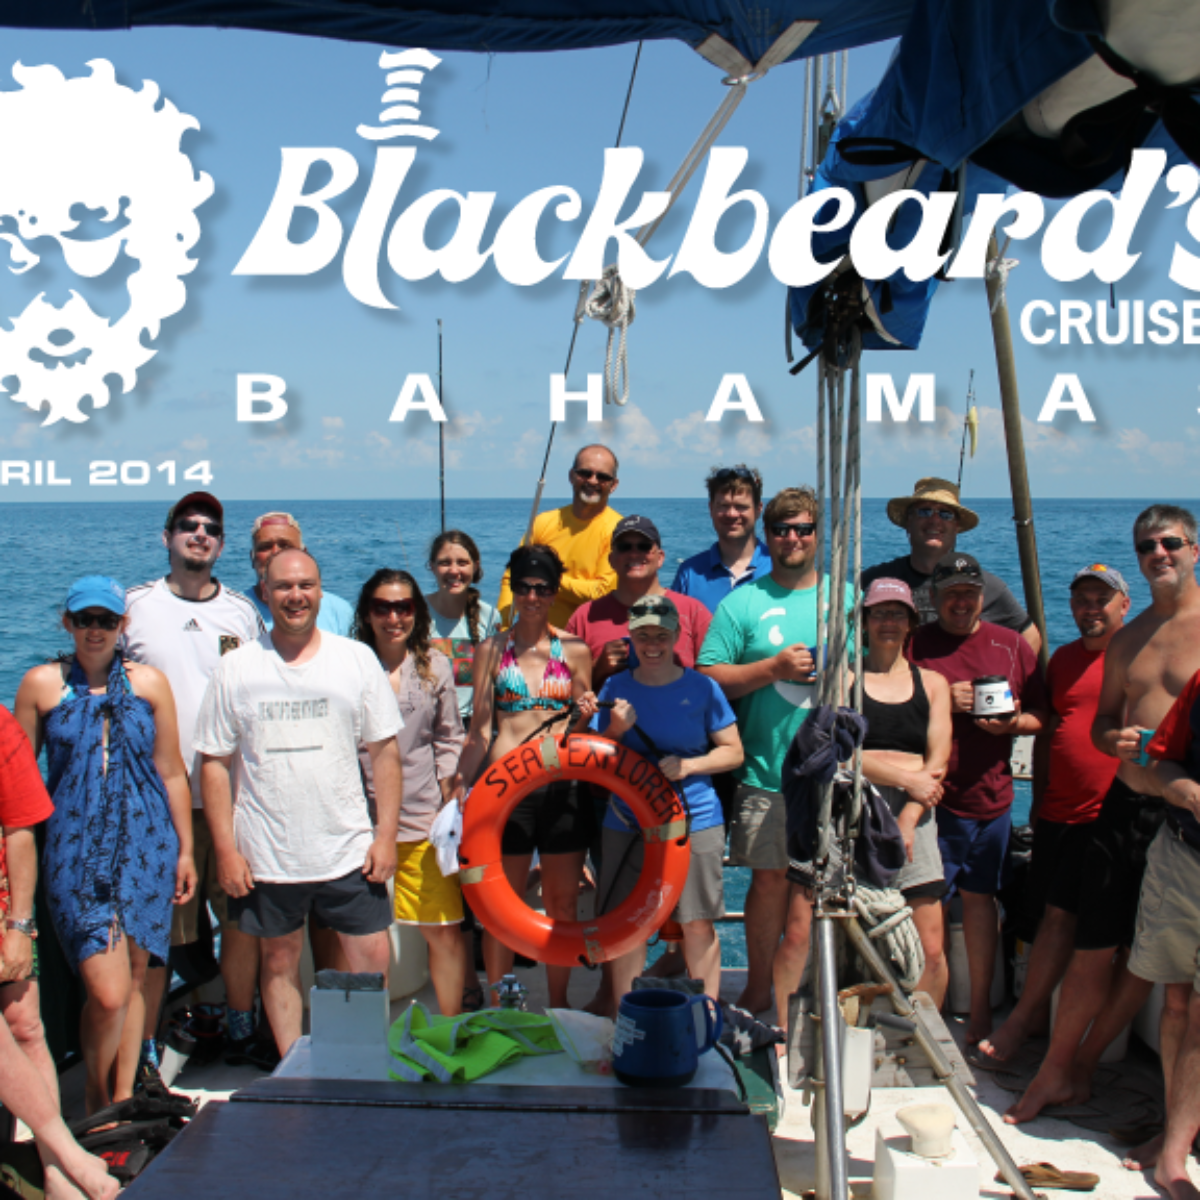 BLACKBEARDS CRUISE – BAHAMAS – APRIL 2014